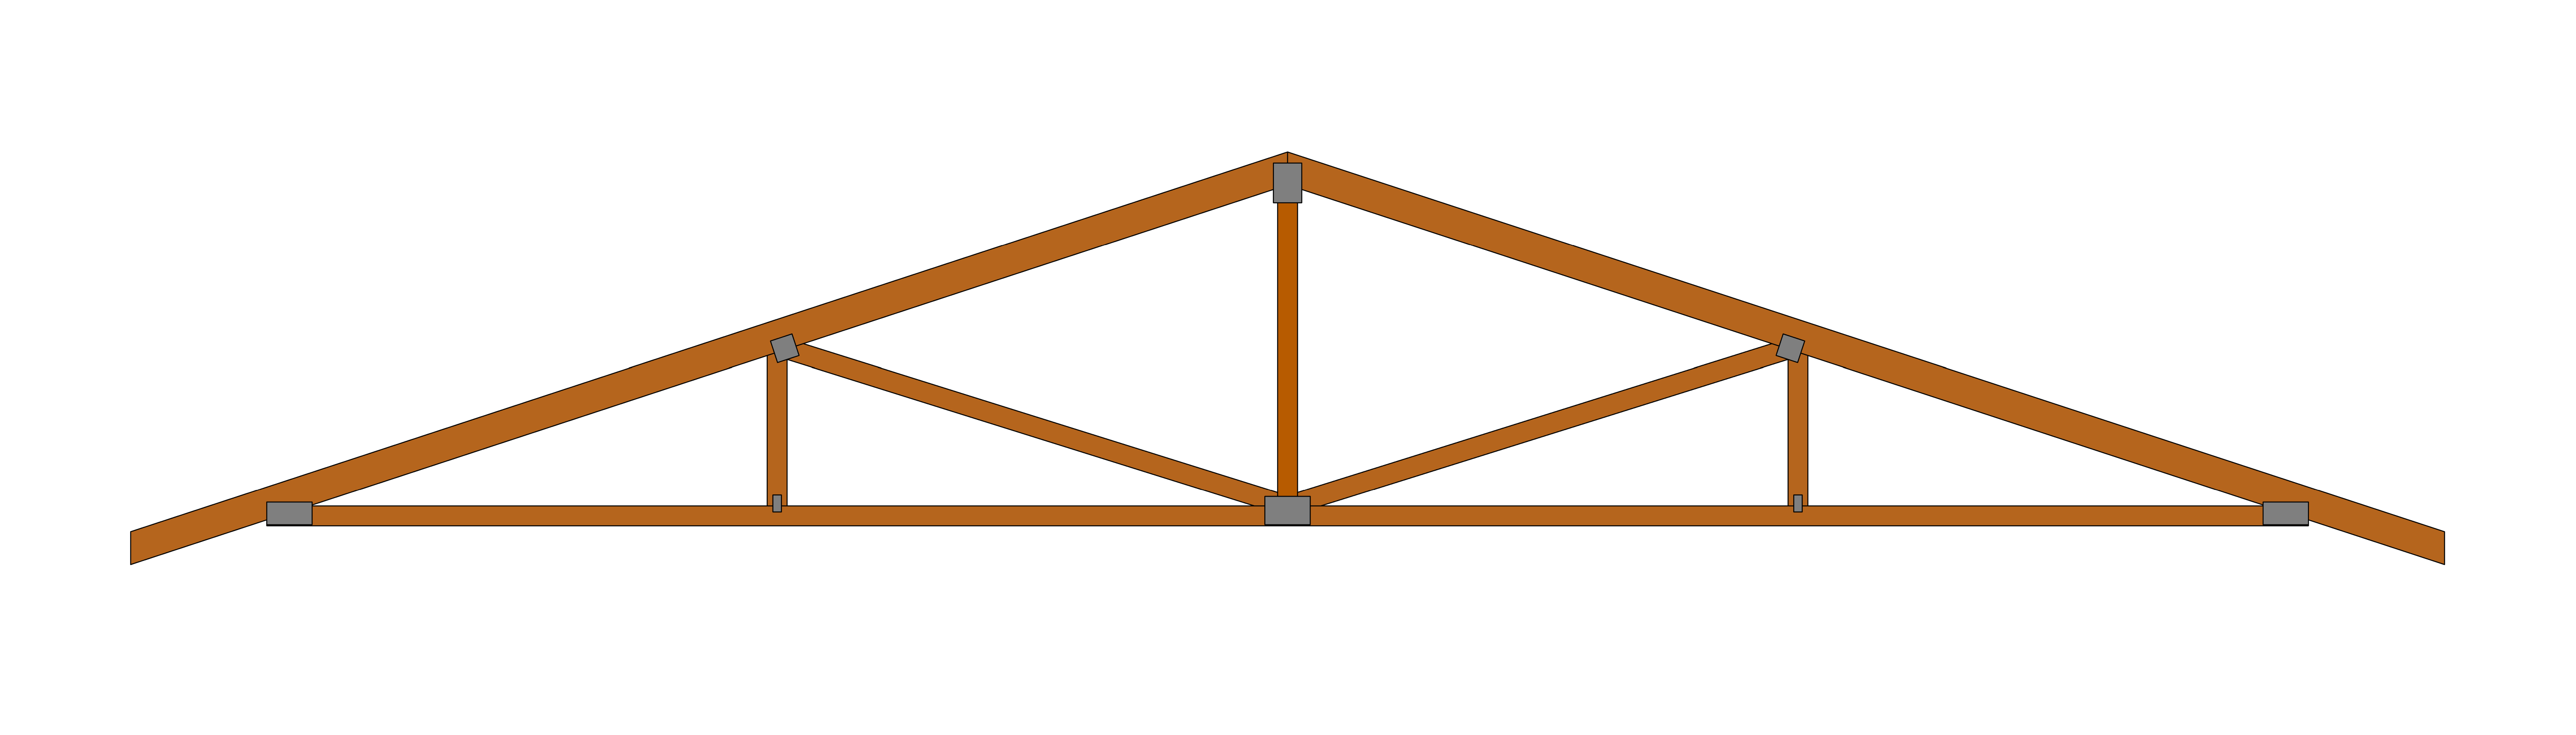 Residential Prefab Trusses G2 National An Evolution In Wood Framed Structure